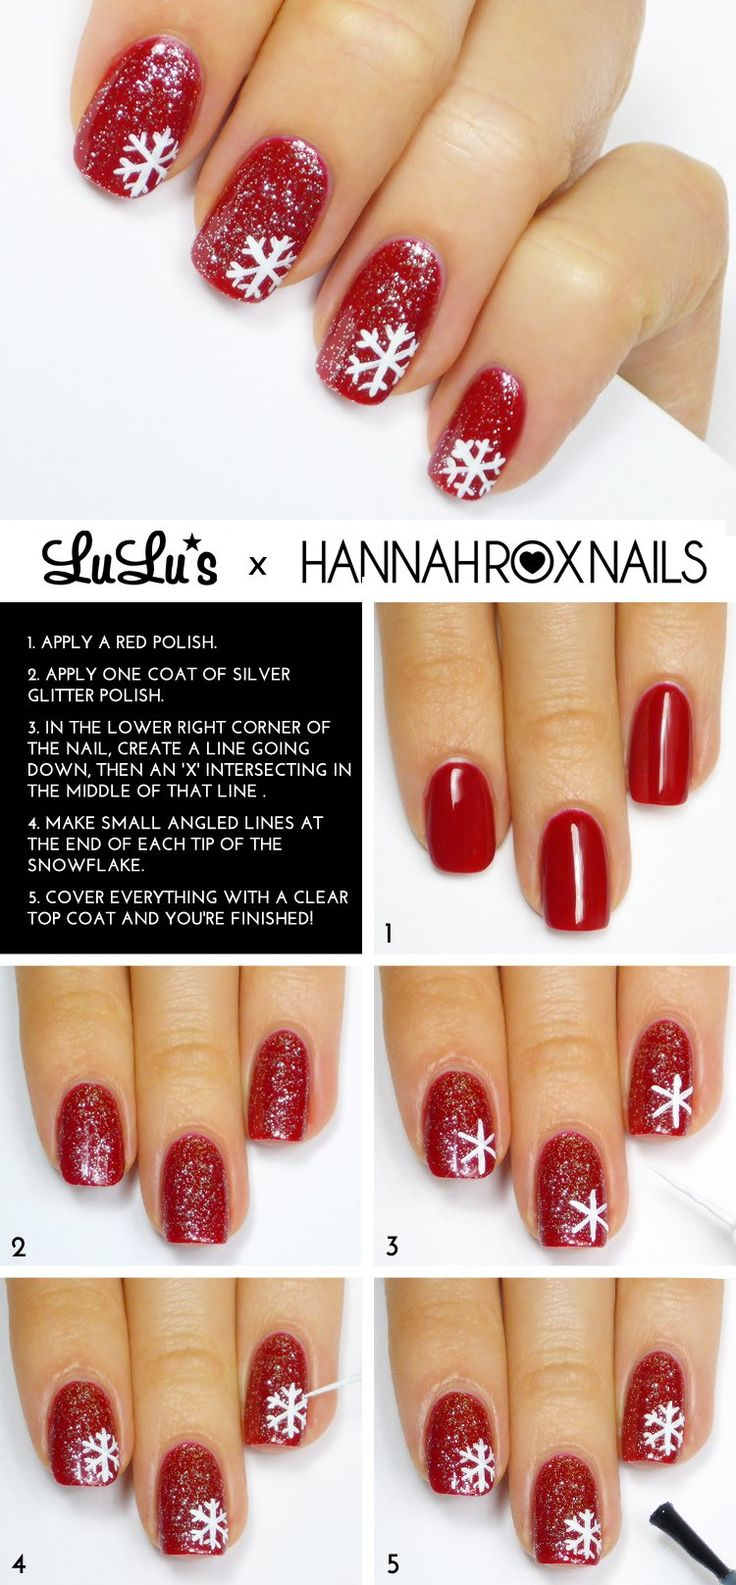 25 gorgeous christmas nail designs ideas on pinterest xmas 25 gorgeous christmas nail designs ideas on pinterest xmas nails christmas nail art designs and christmas nails prinsesfo Image collections